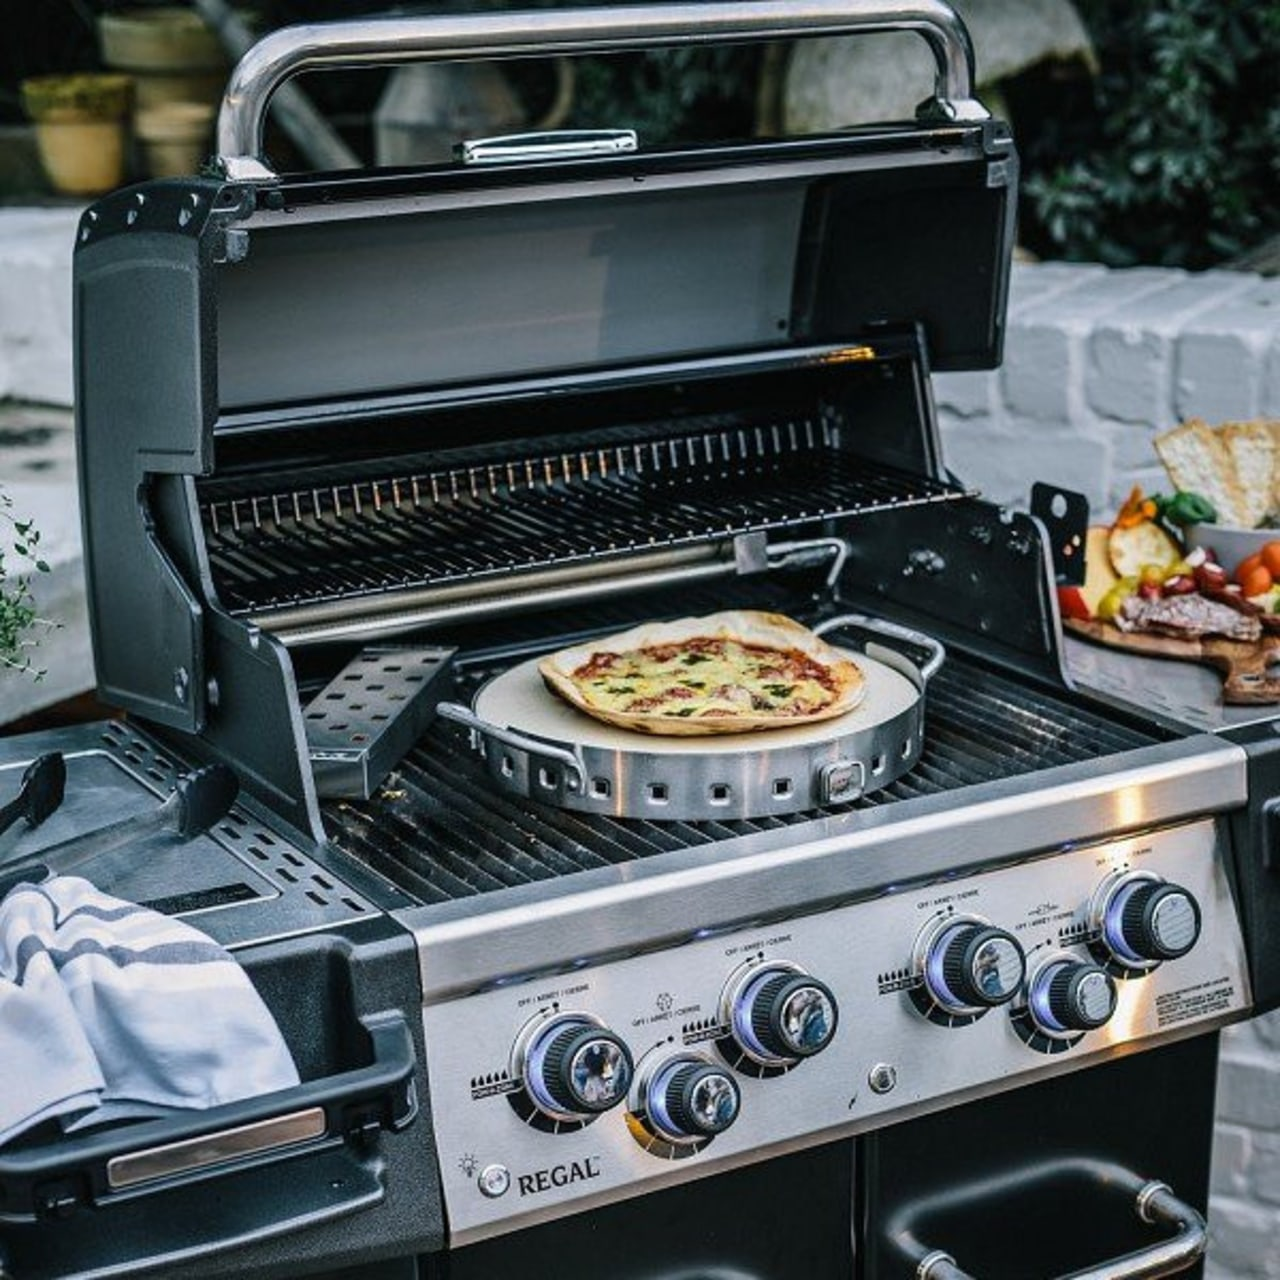 Baking pizza on a BBQ? Of course! barbecue grill, grilling, home appliance, kitchen appliance, outdoor grill, black, gray